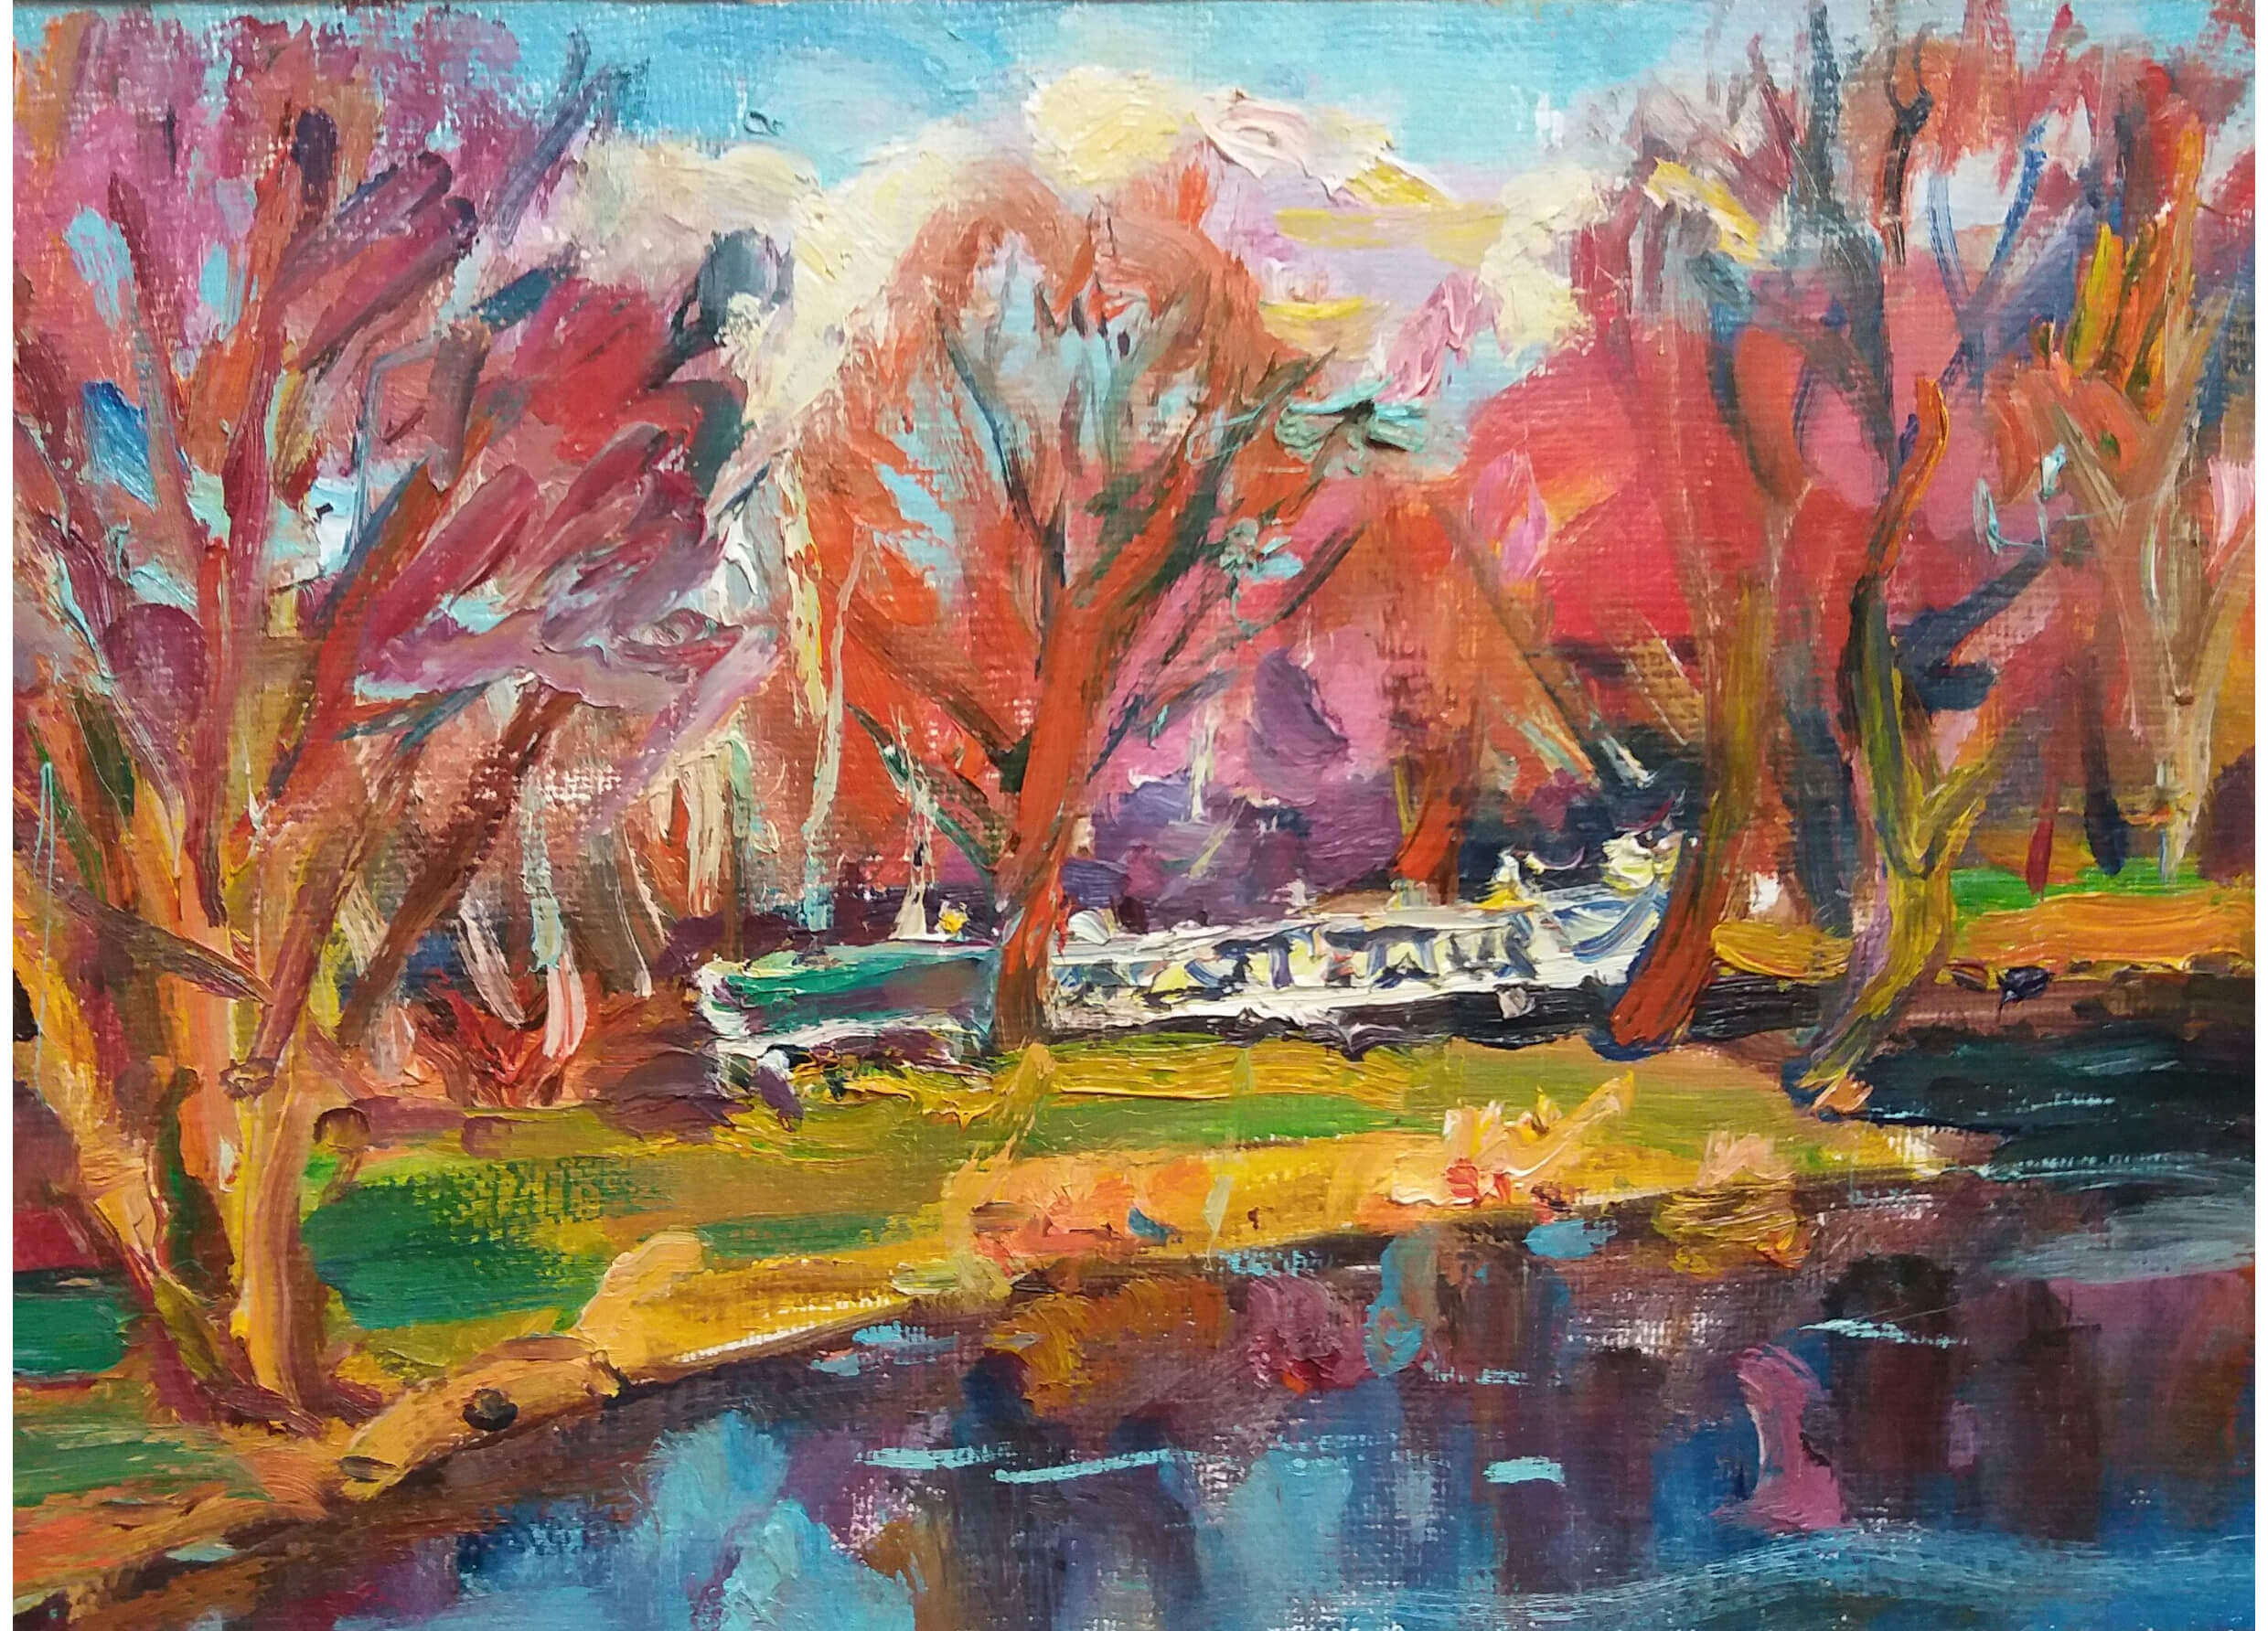 Botanical Gardens Chisinau, Oil on canvas, 60 x 80 cm